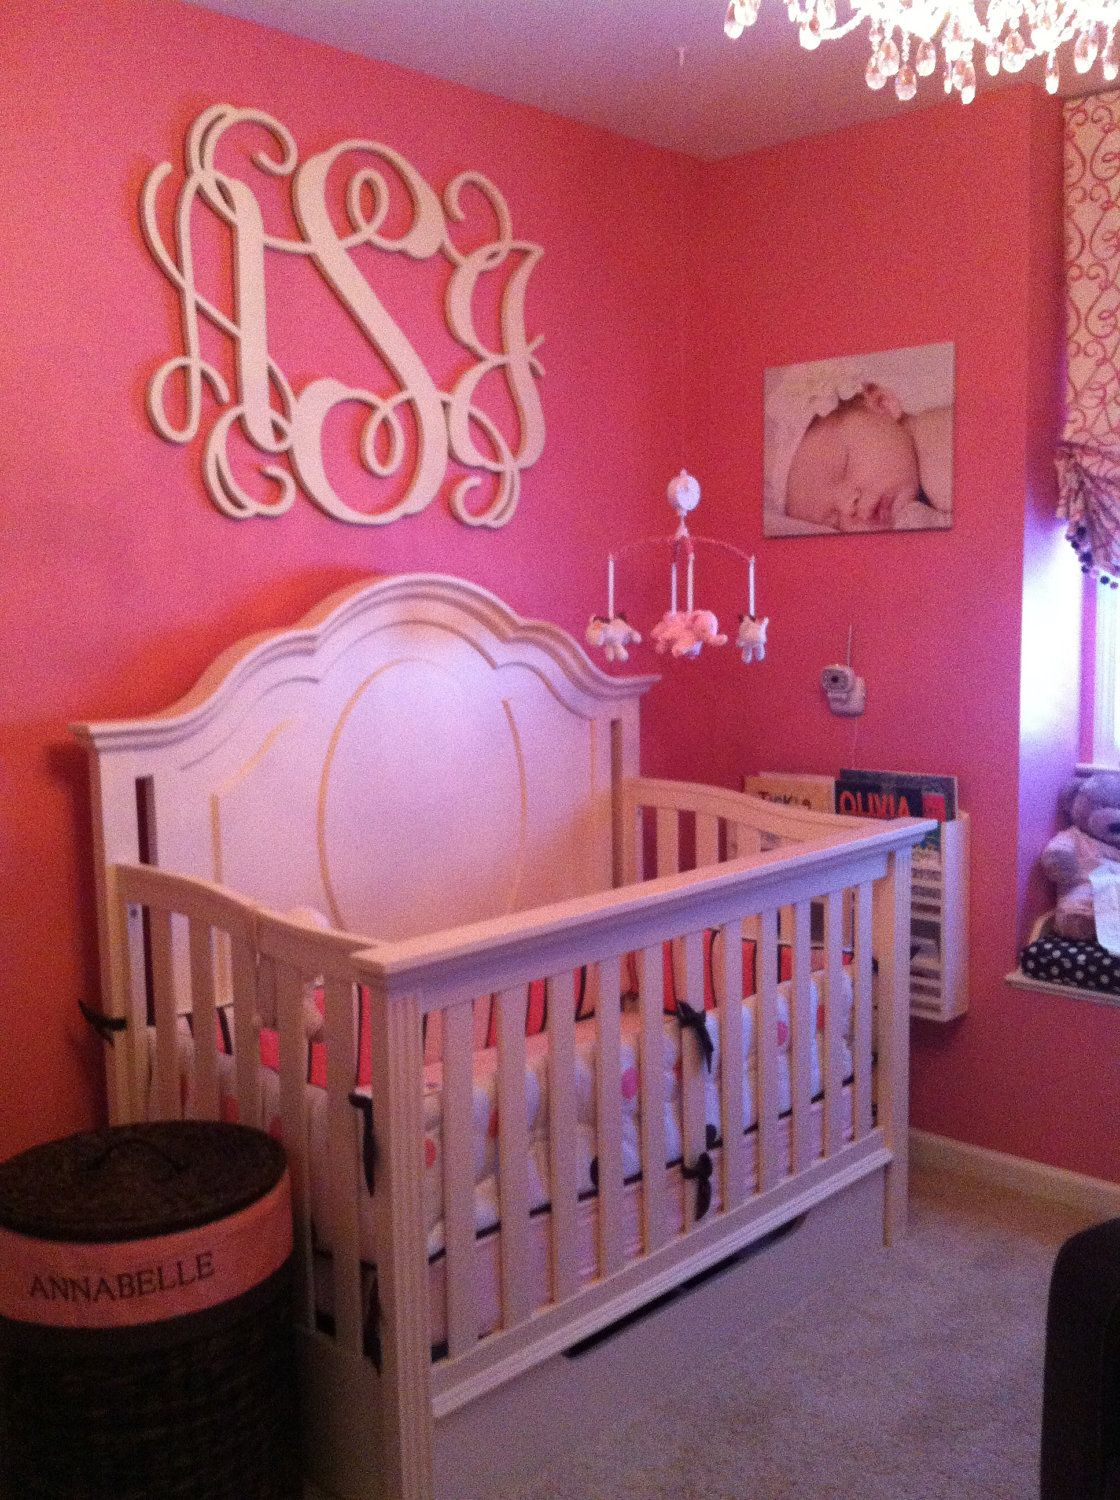 boy of crib size cribs pallet and s supplies room wooden bed unfinished pinterest diy with red on from baby style full vintage decoration black decorating ideas ladybug to best party